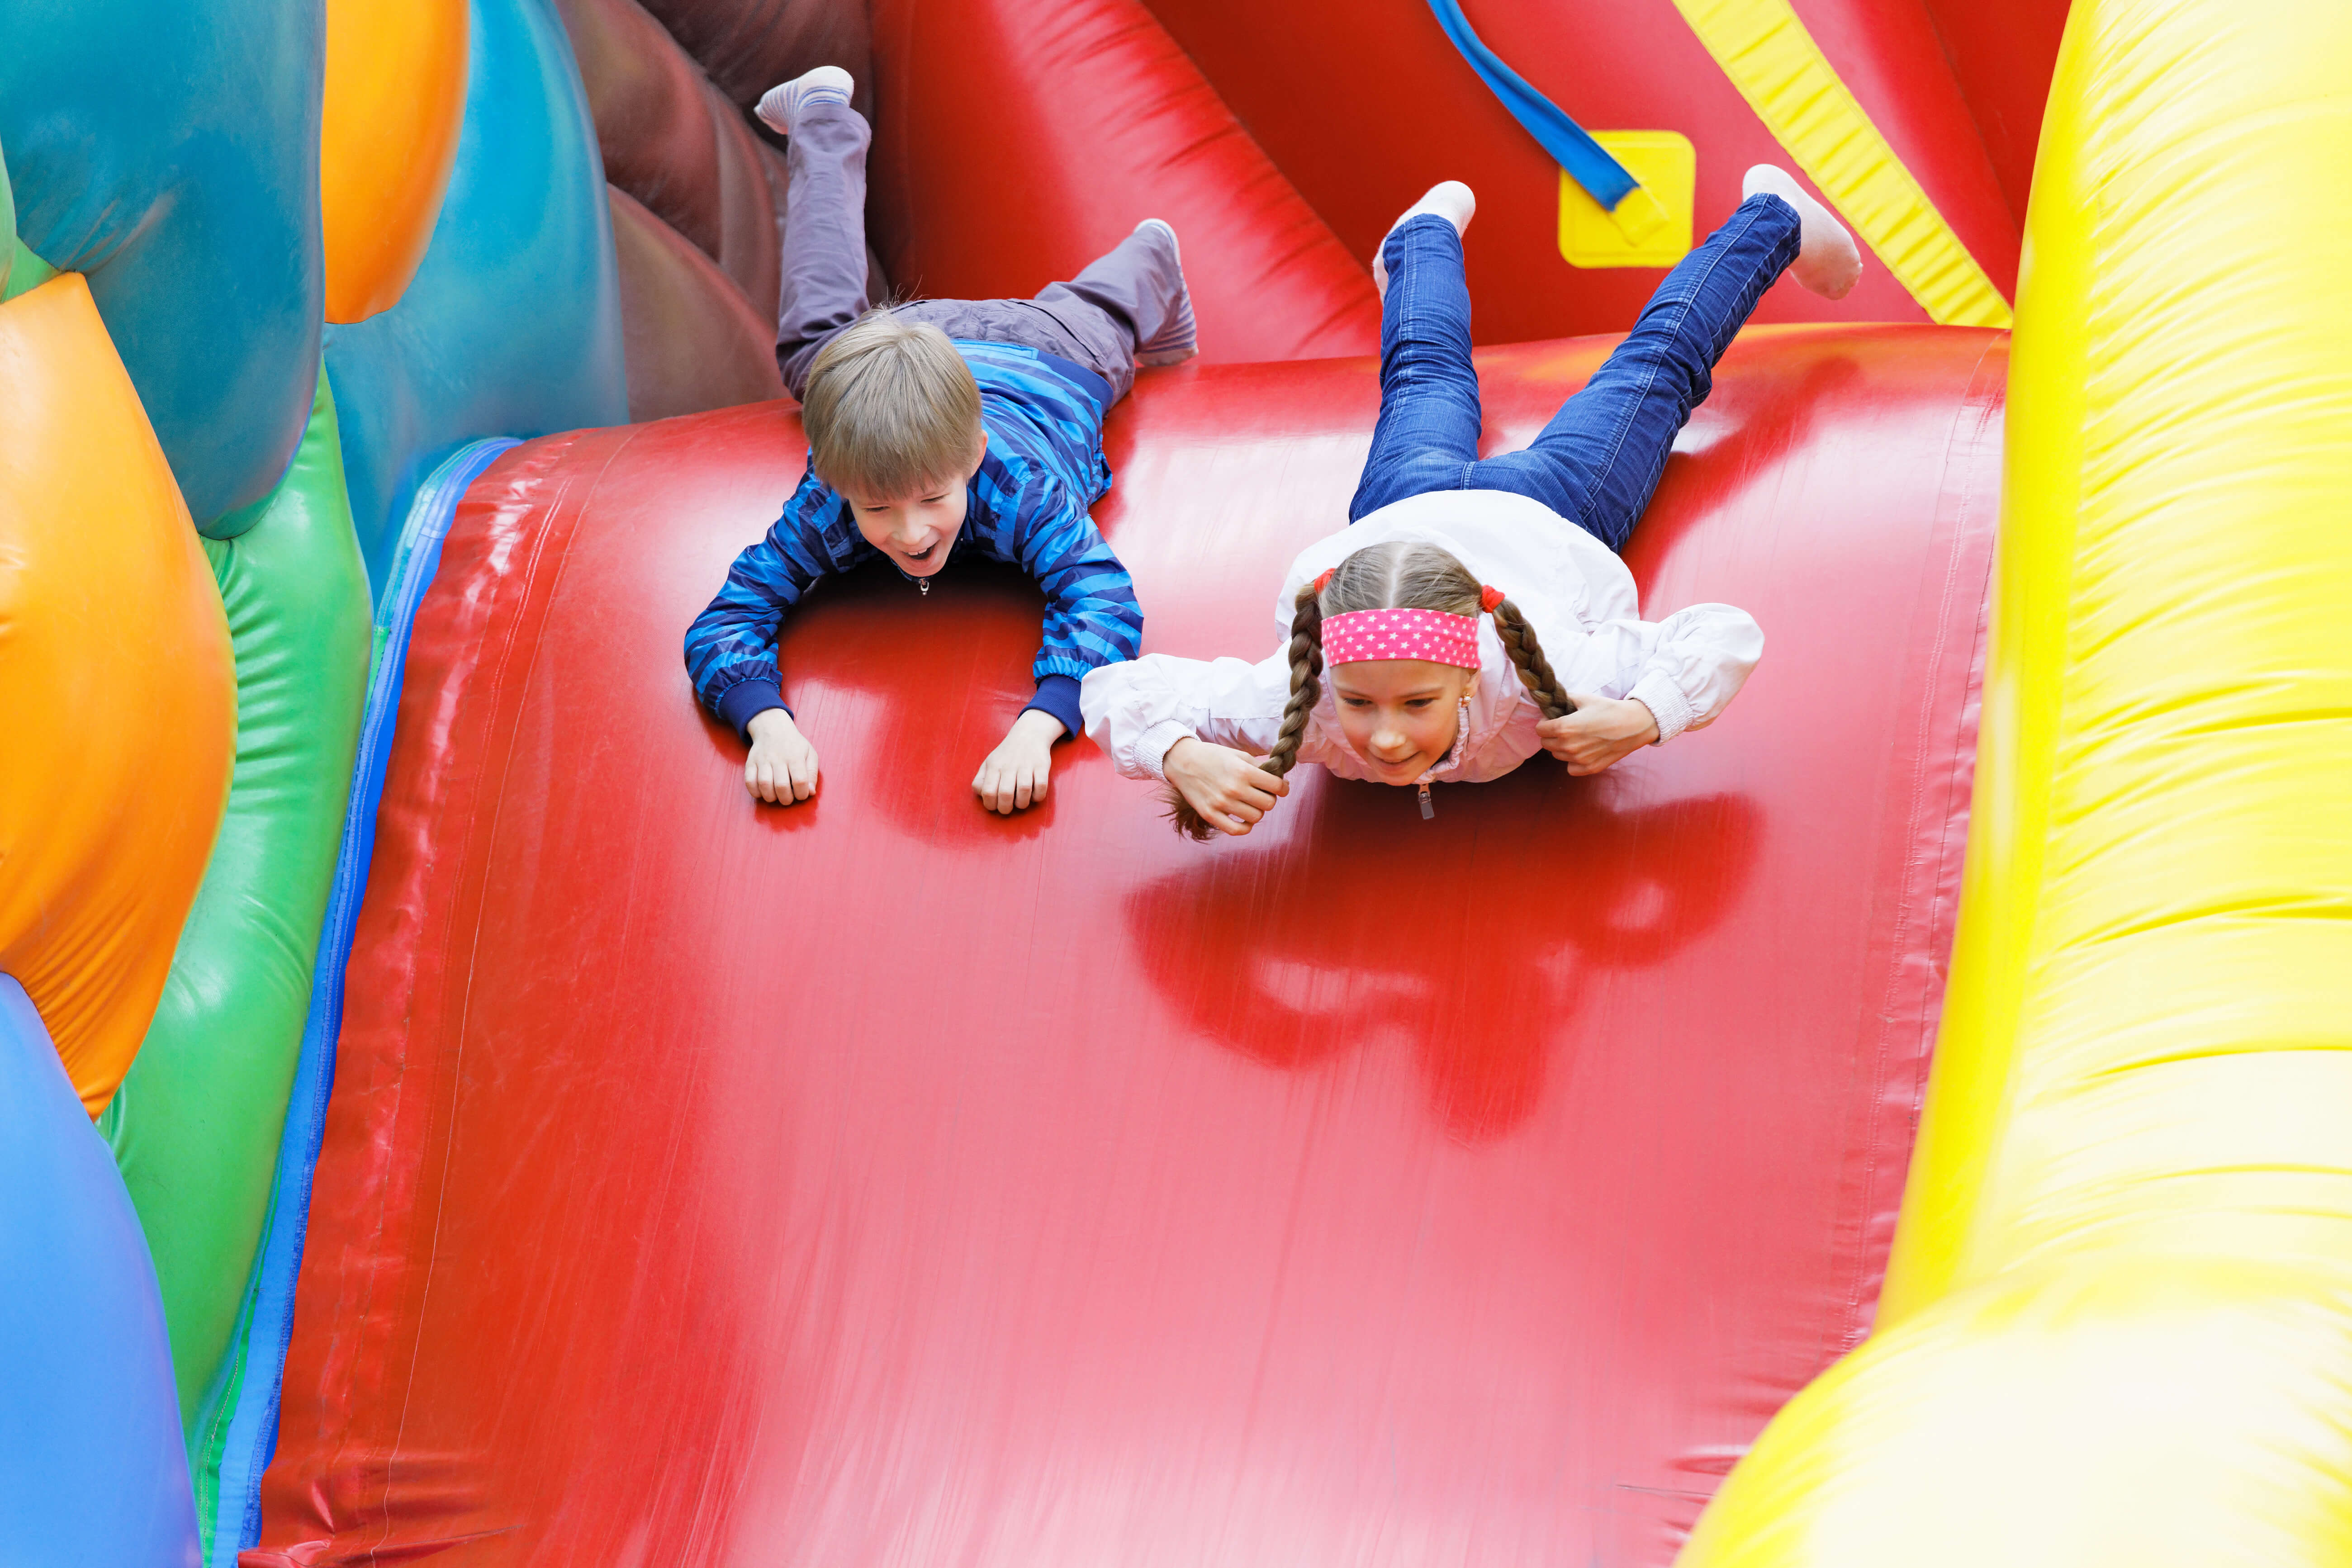 Brother And Sister Have Fun In The Park On An Inflatable Attraction